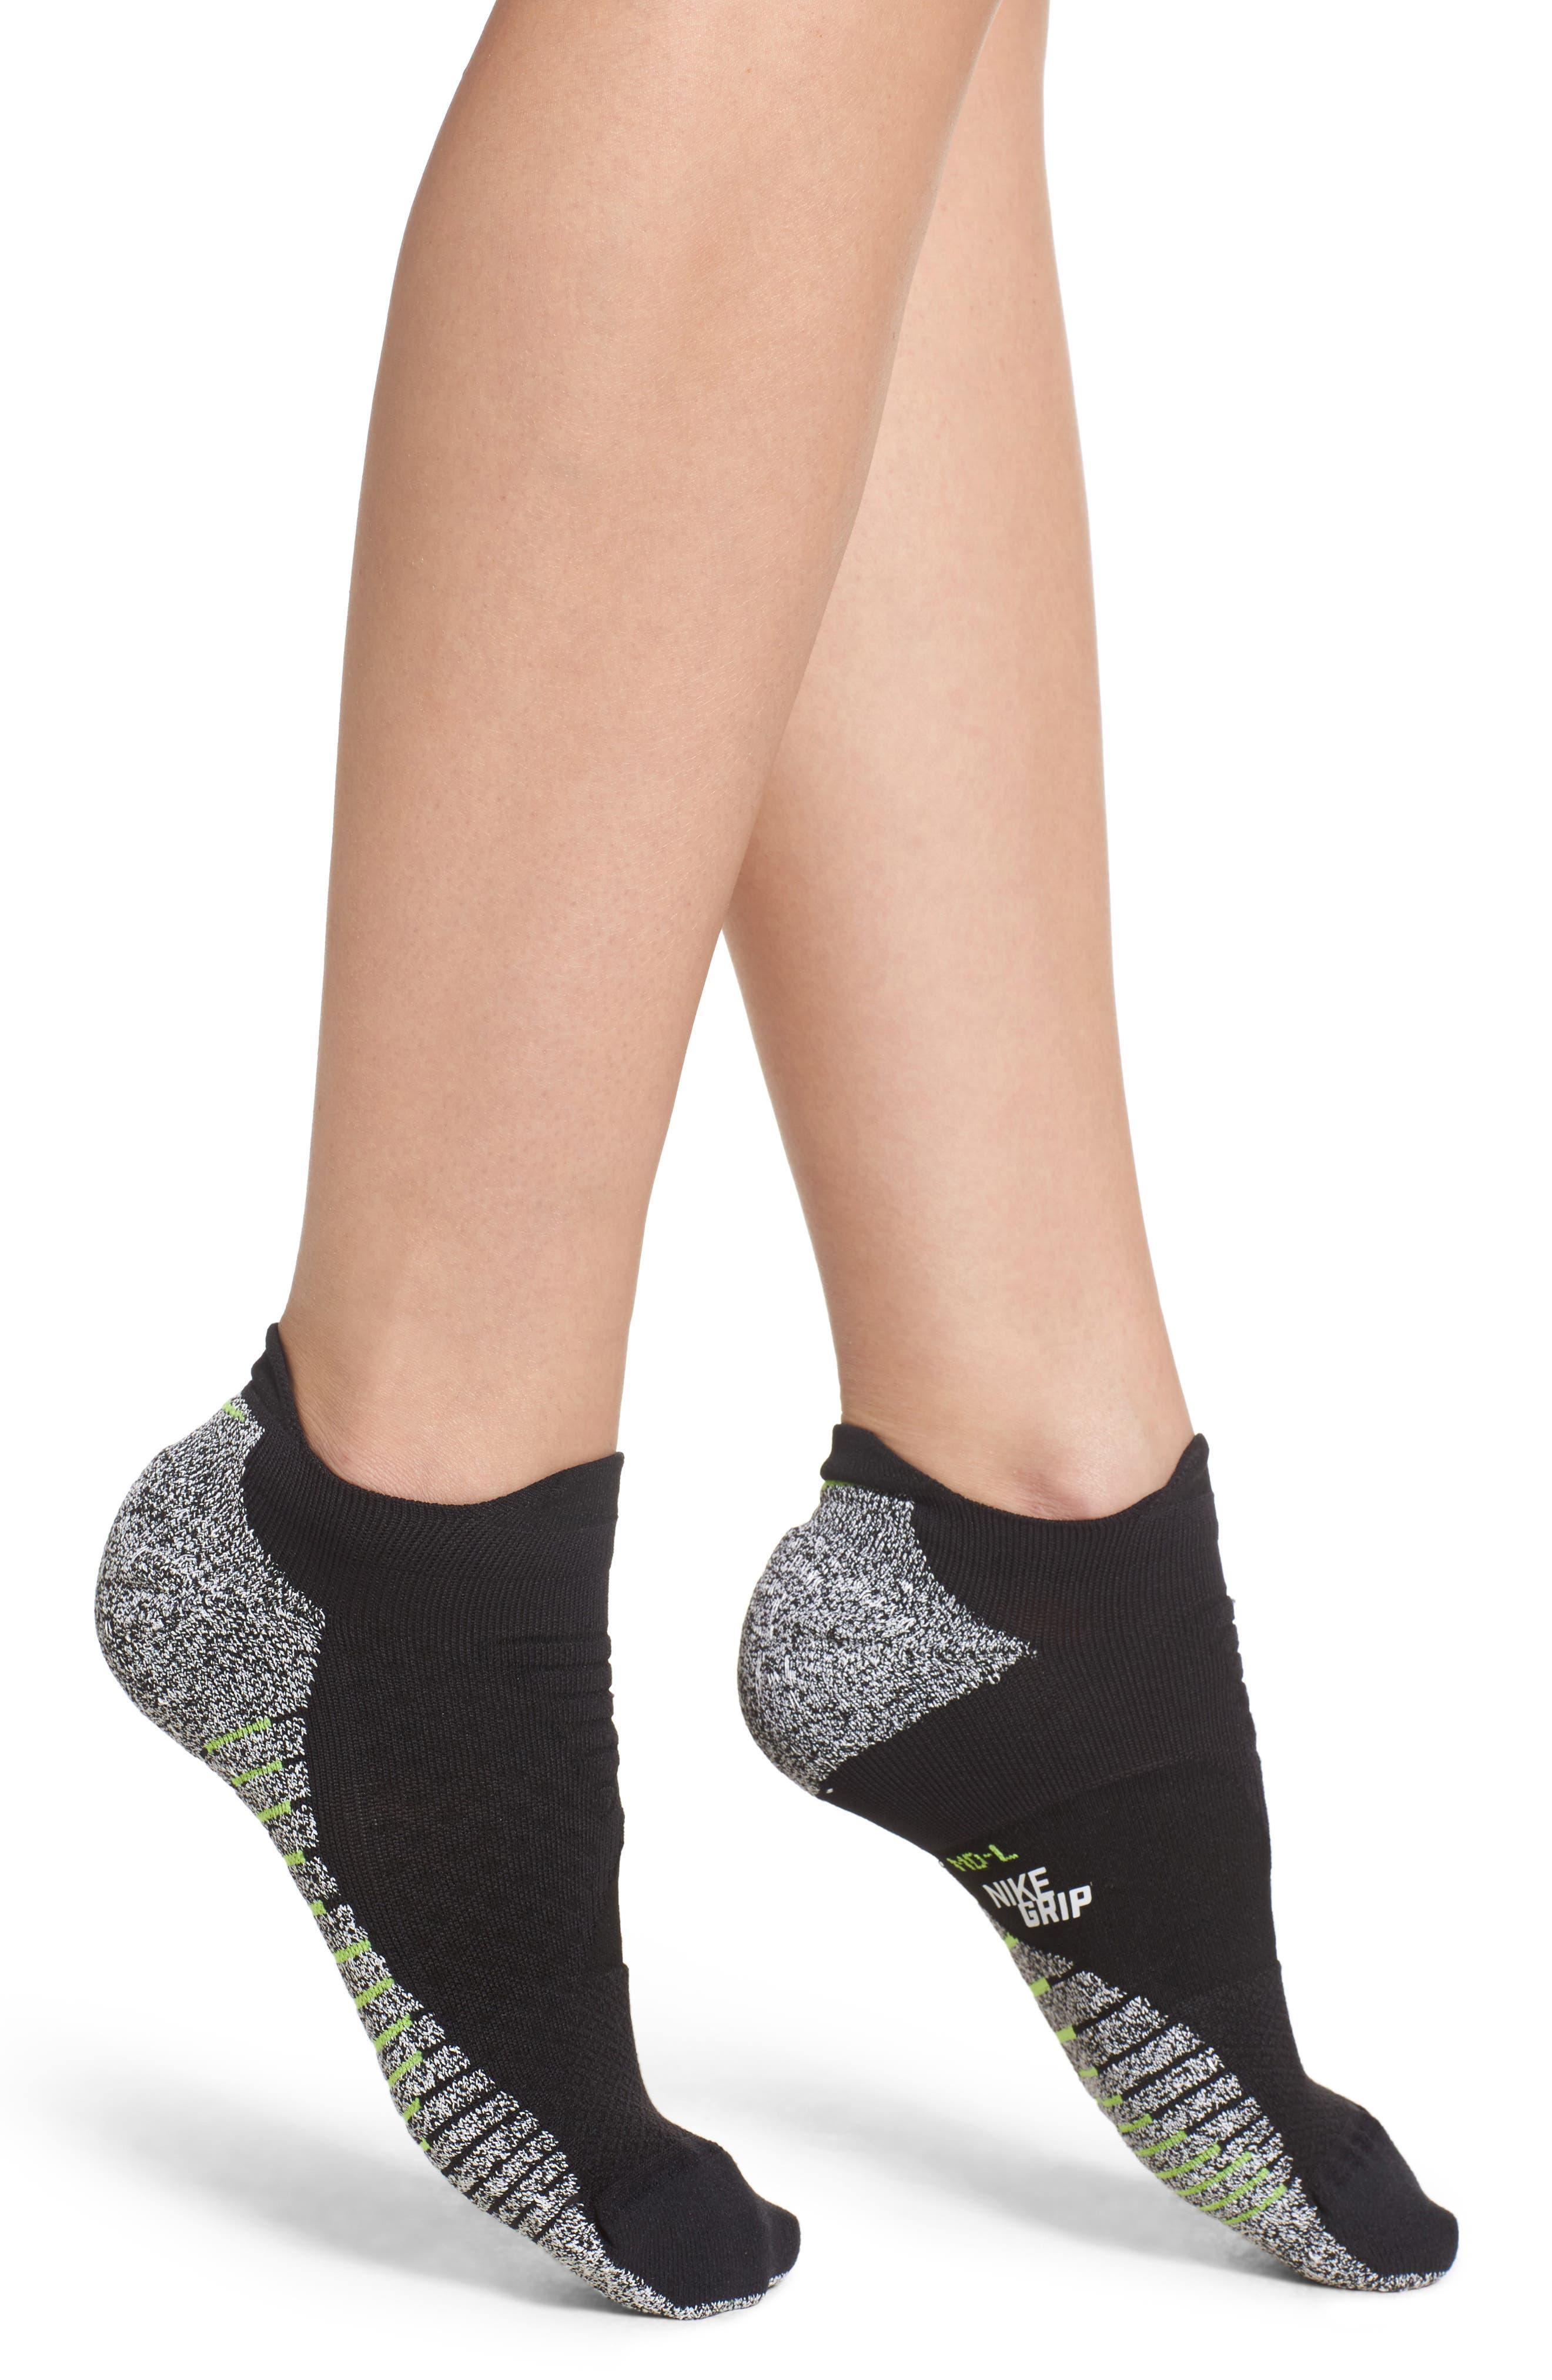 NikeGrip Low Cut Socks,                         Main,                         color,